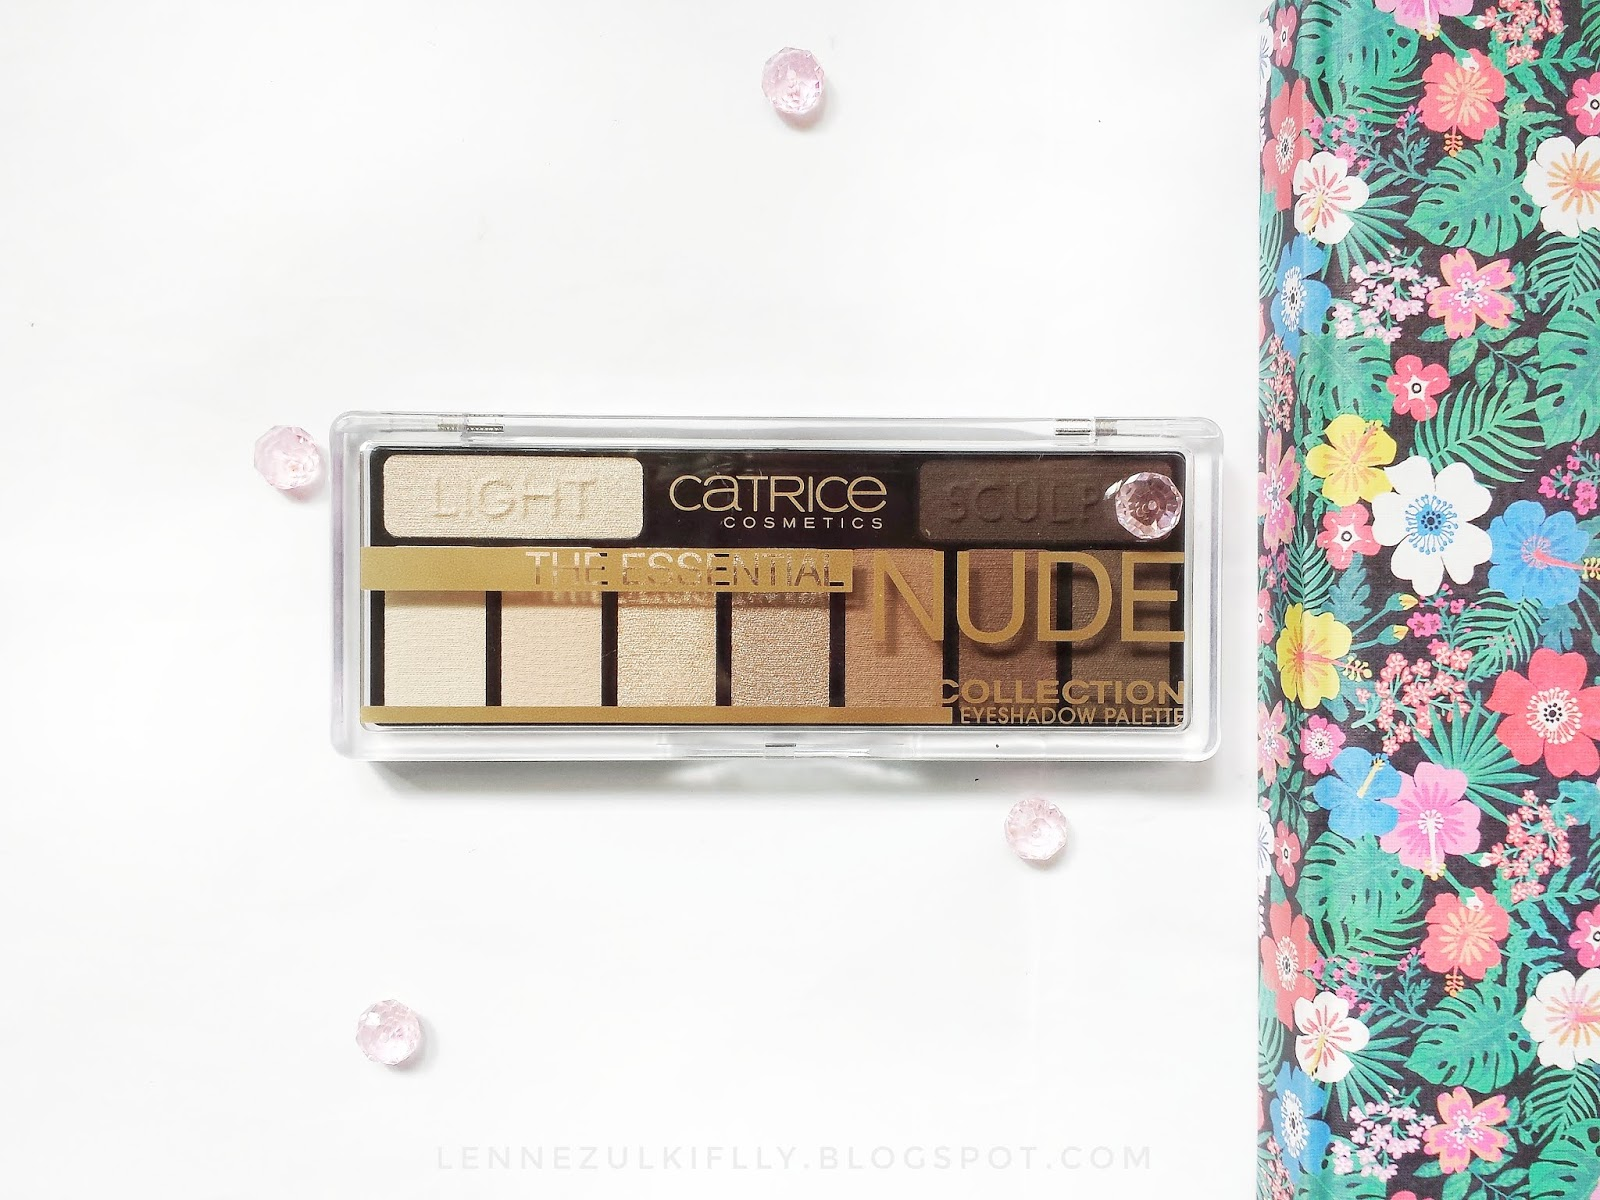 Catrice The Essential Nude Eyeshadow Palette | LENNE ZULKIFLLY